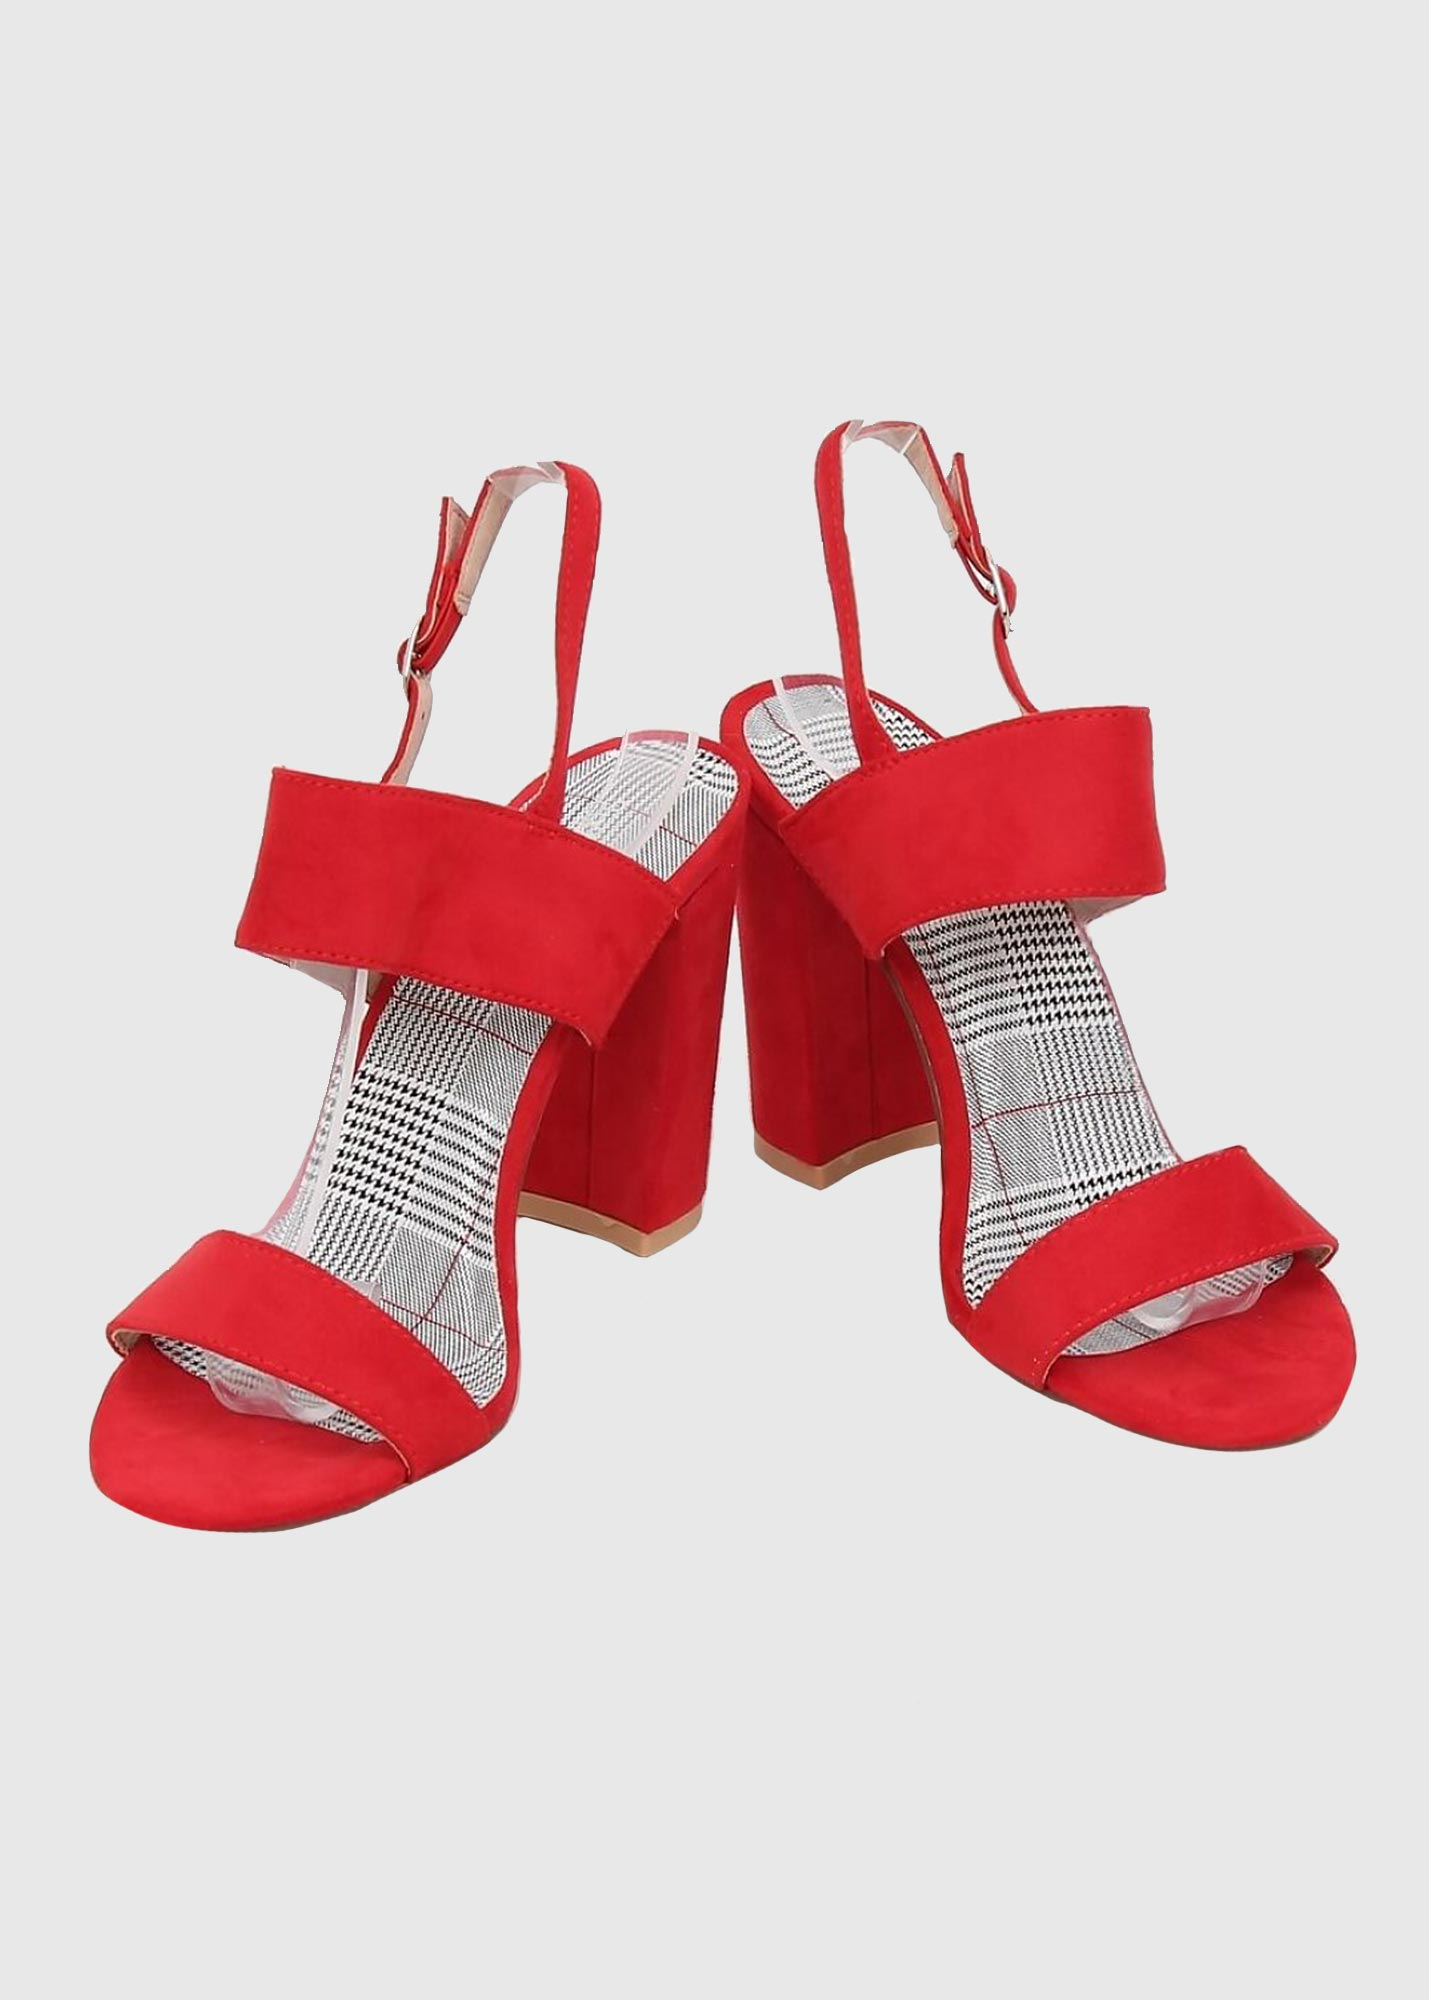 111897305e940 Aryana red heeled sandals - Clothing store KOKOS